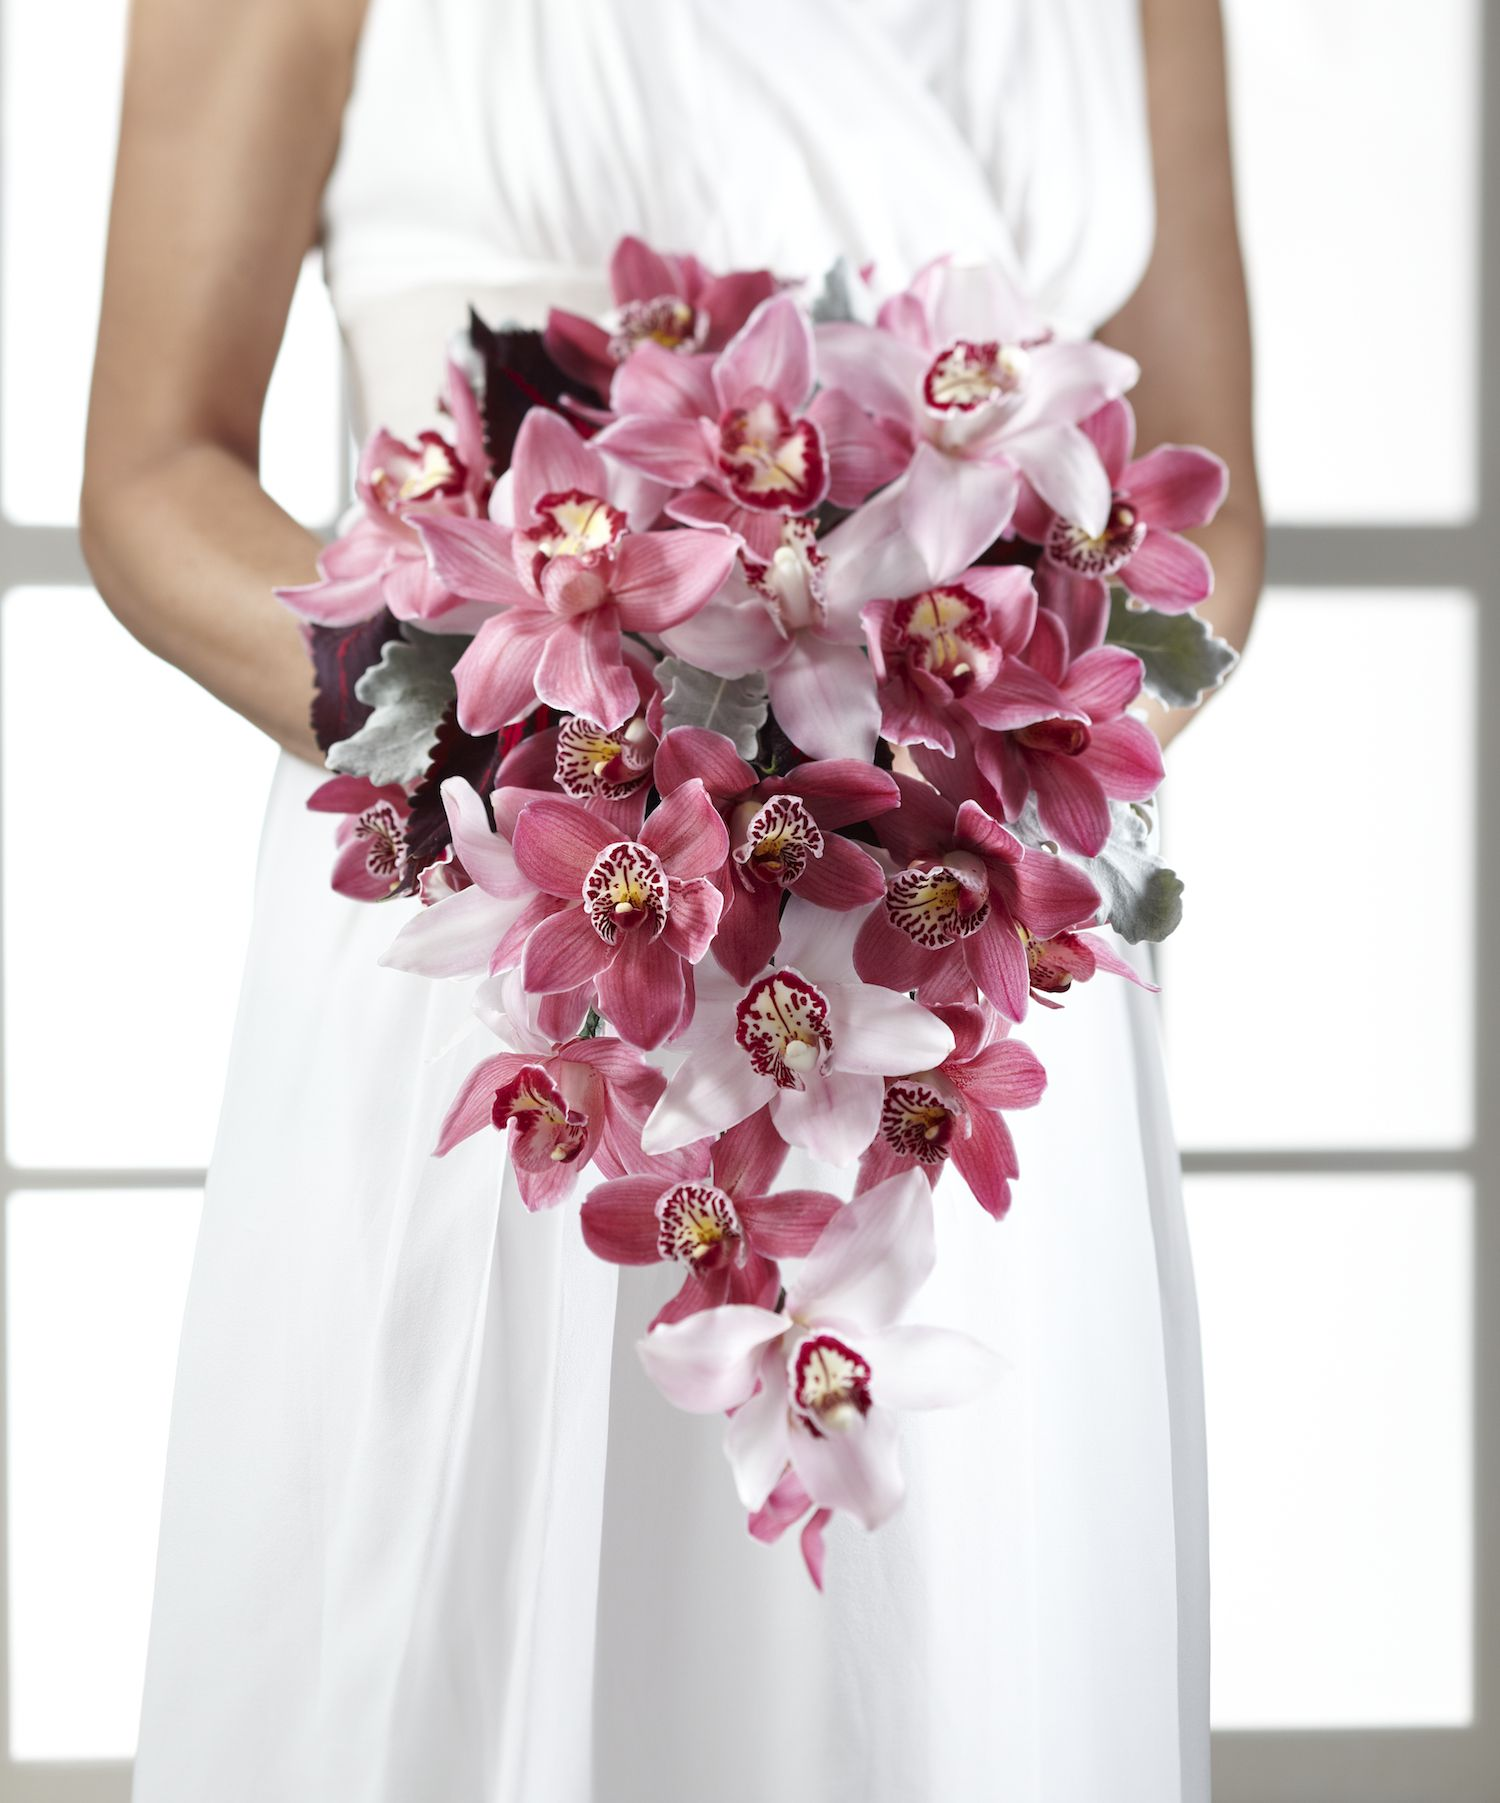 Perfectly Opulent With The Use Of Pink And Pale Pink Cymbidium Orchids Accented With Burgundy Mini Cym Beautiful Wedding Flowers Burgundy Bouquet Pink Orchids